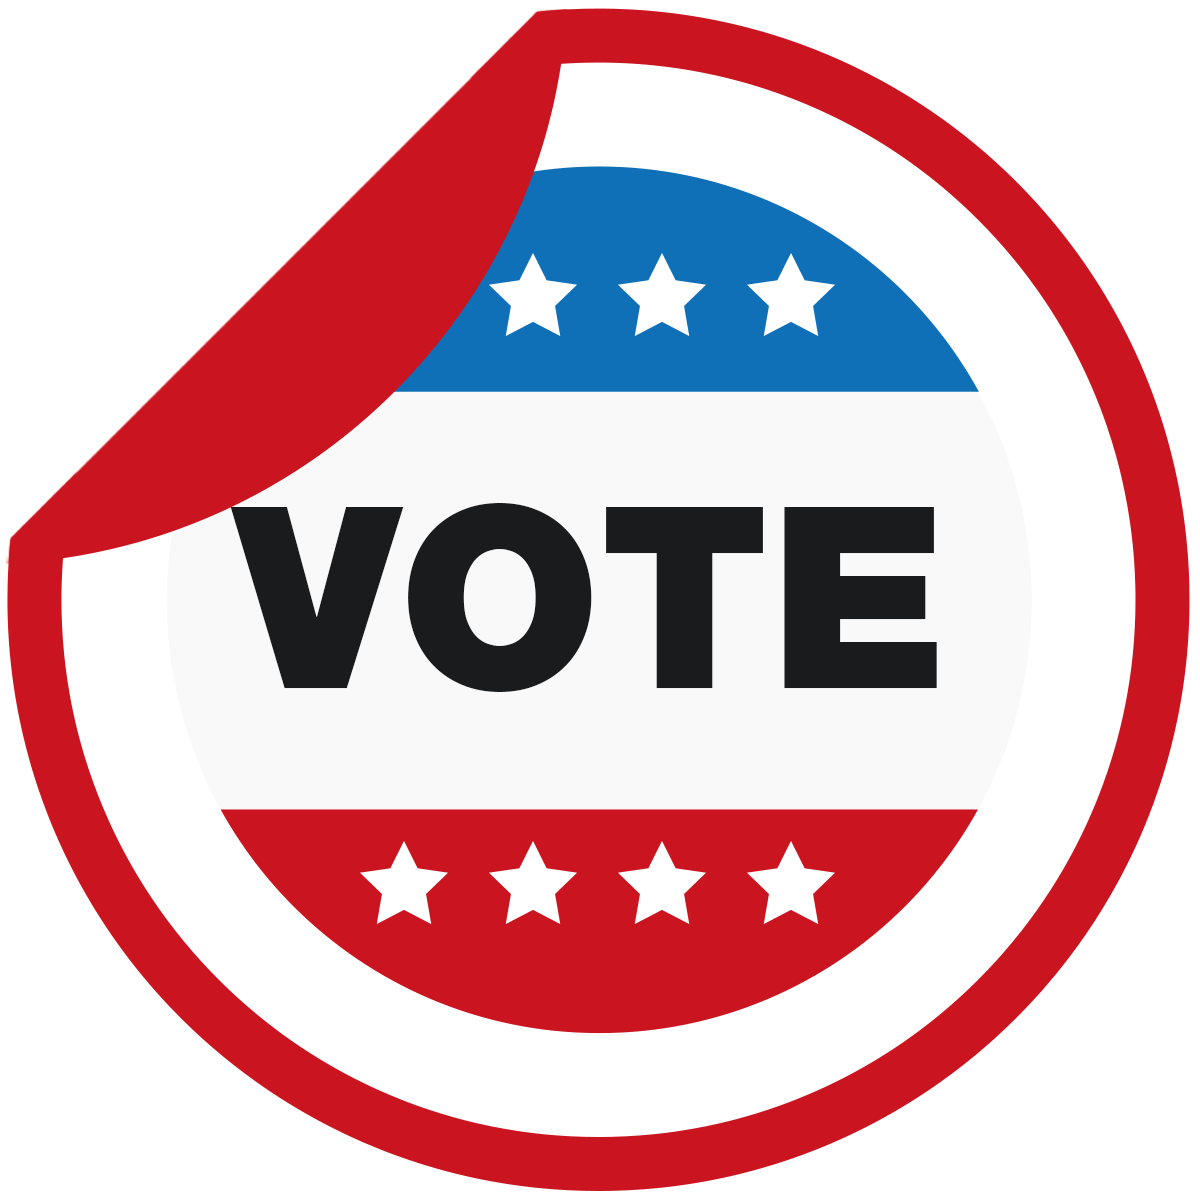 Vote Sticker Graphic